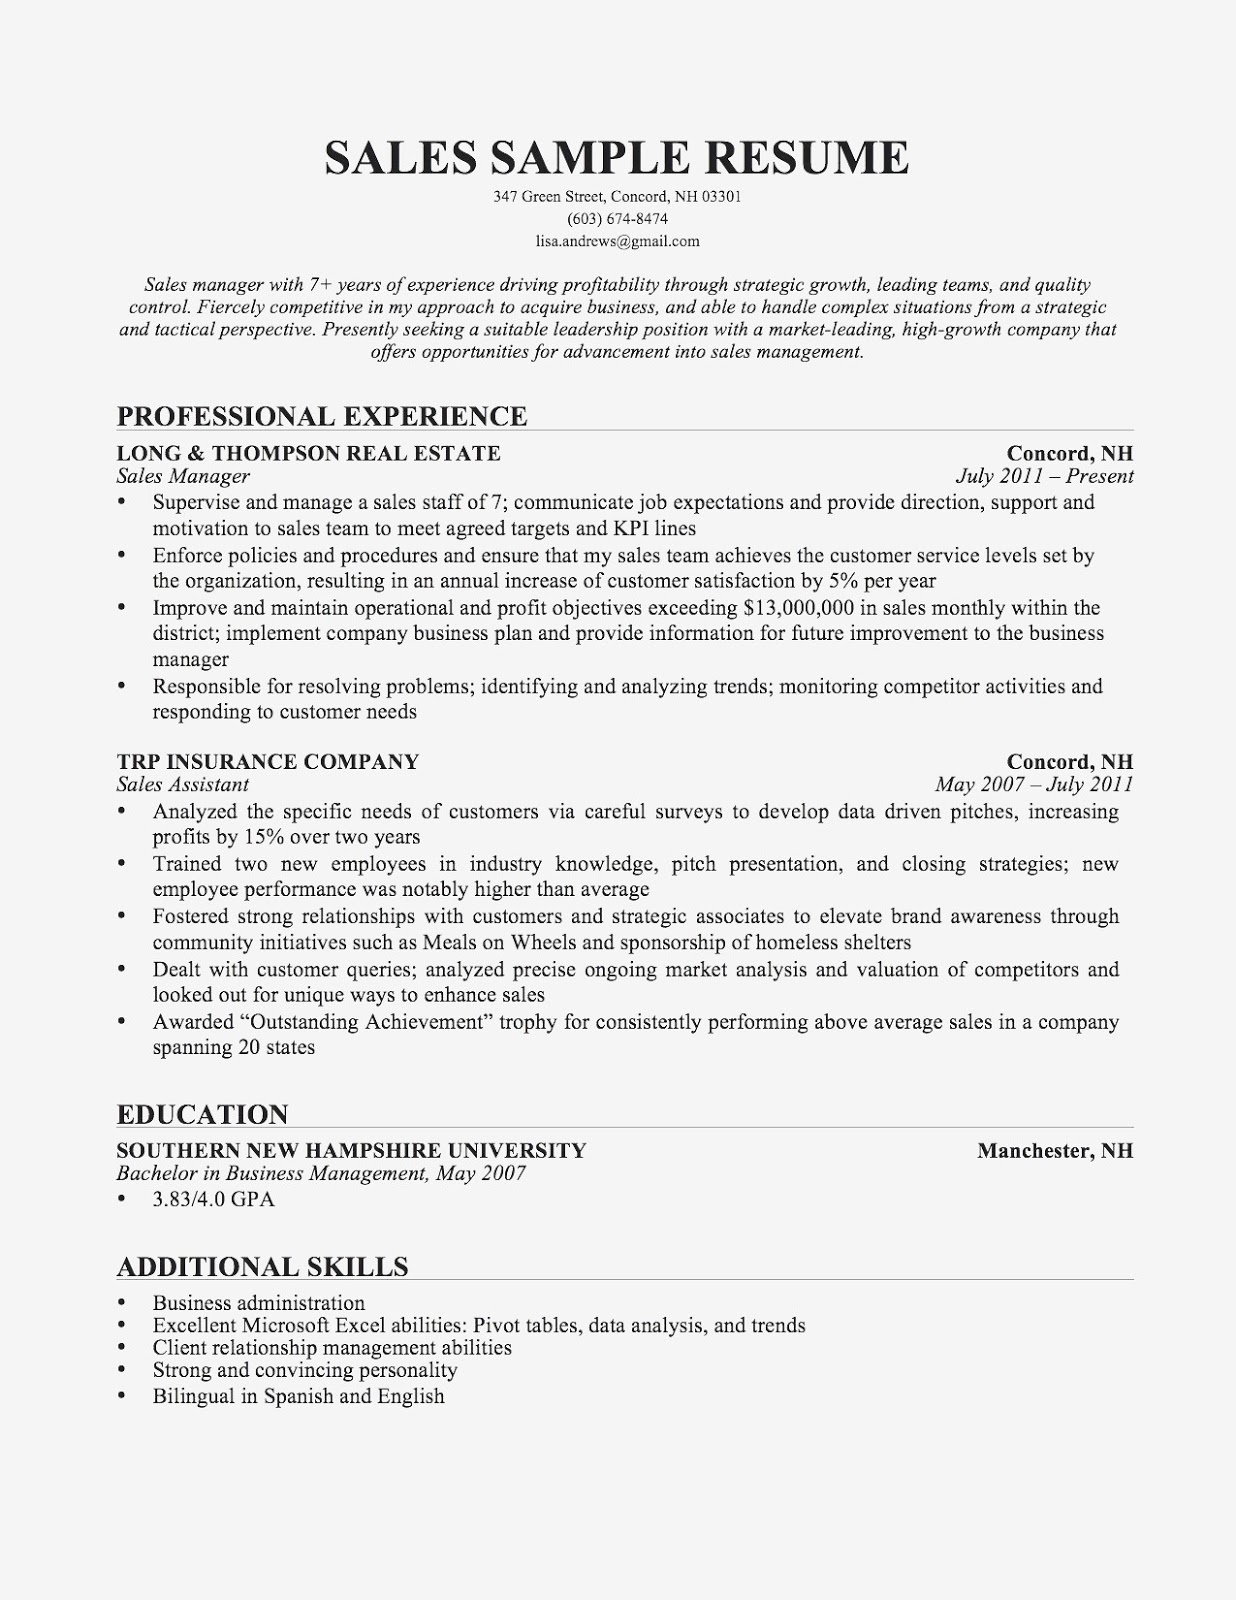 Academic resume sample, academic resume sample pdf, Academic resume sample 2019, academic resume sample for college, academic resume sample phd, academic cv sample doc, academic cv uk example, Academic resume sample 2020, academic cv sample pdf, academic cv sample for phd application